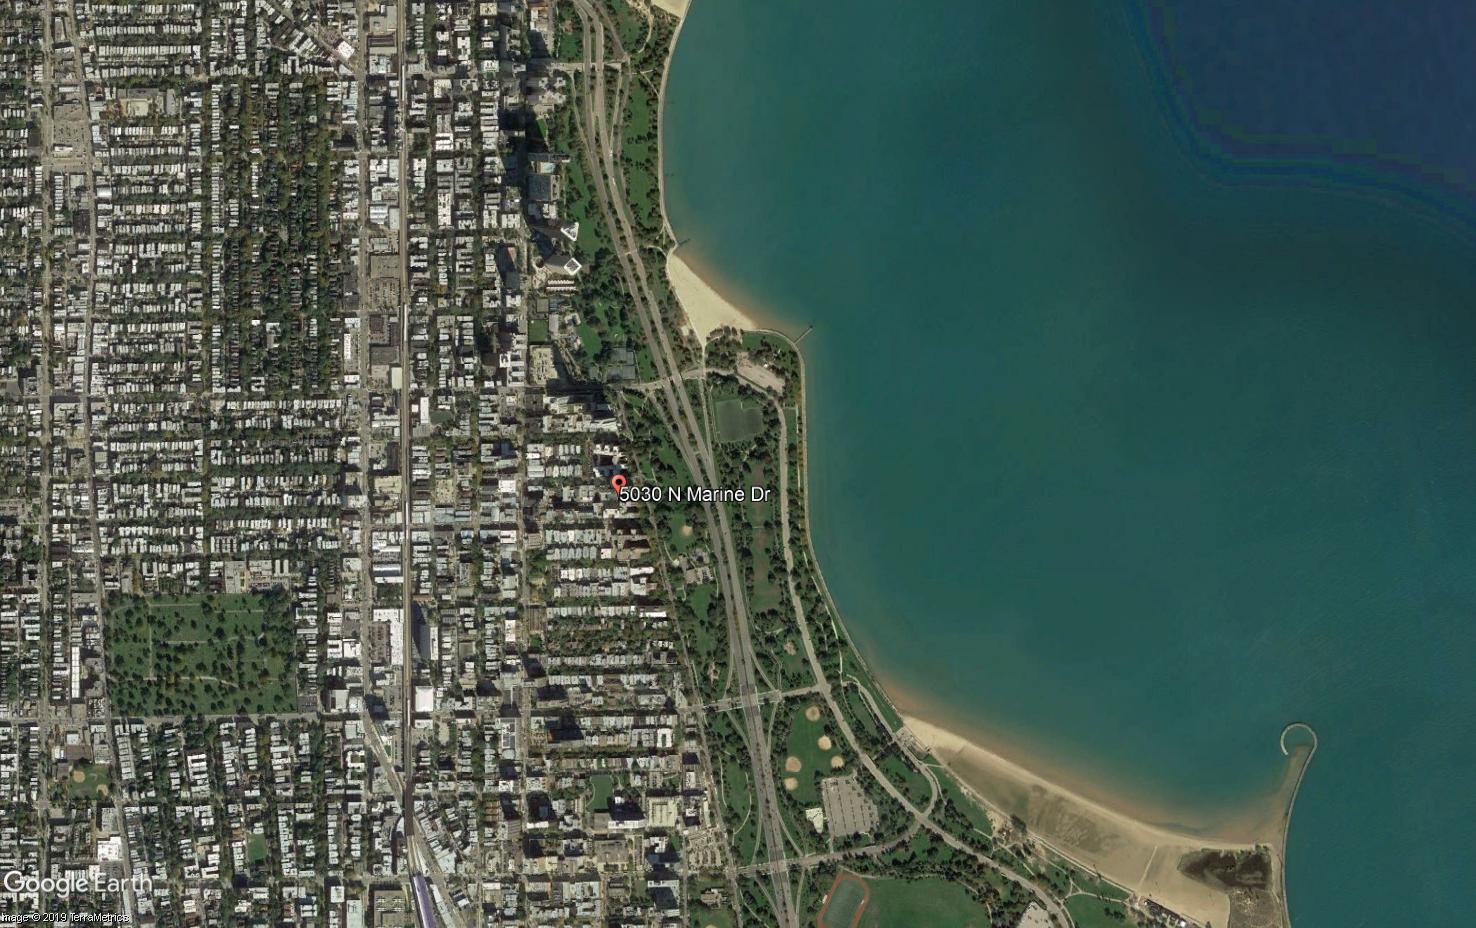 Aerial view of rows upon rows of buildings on the left, with a green buffer and the shores of Lake Michigan on the right.